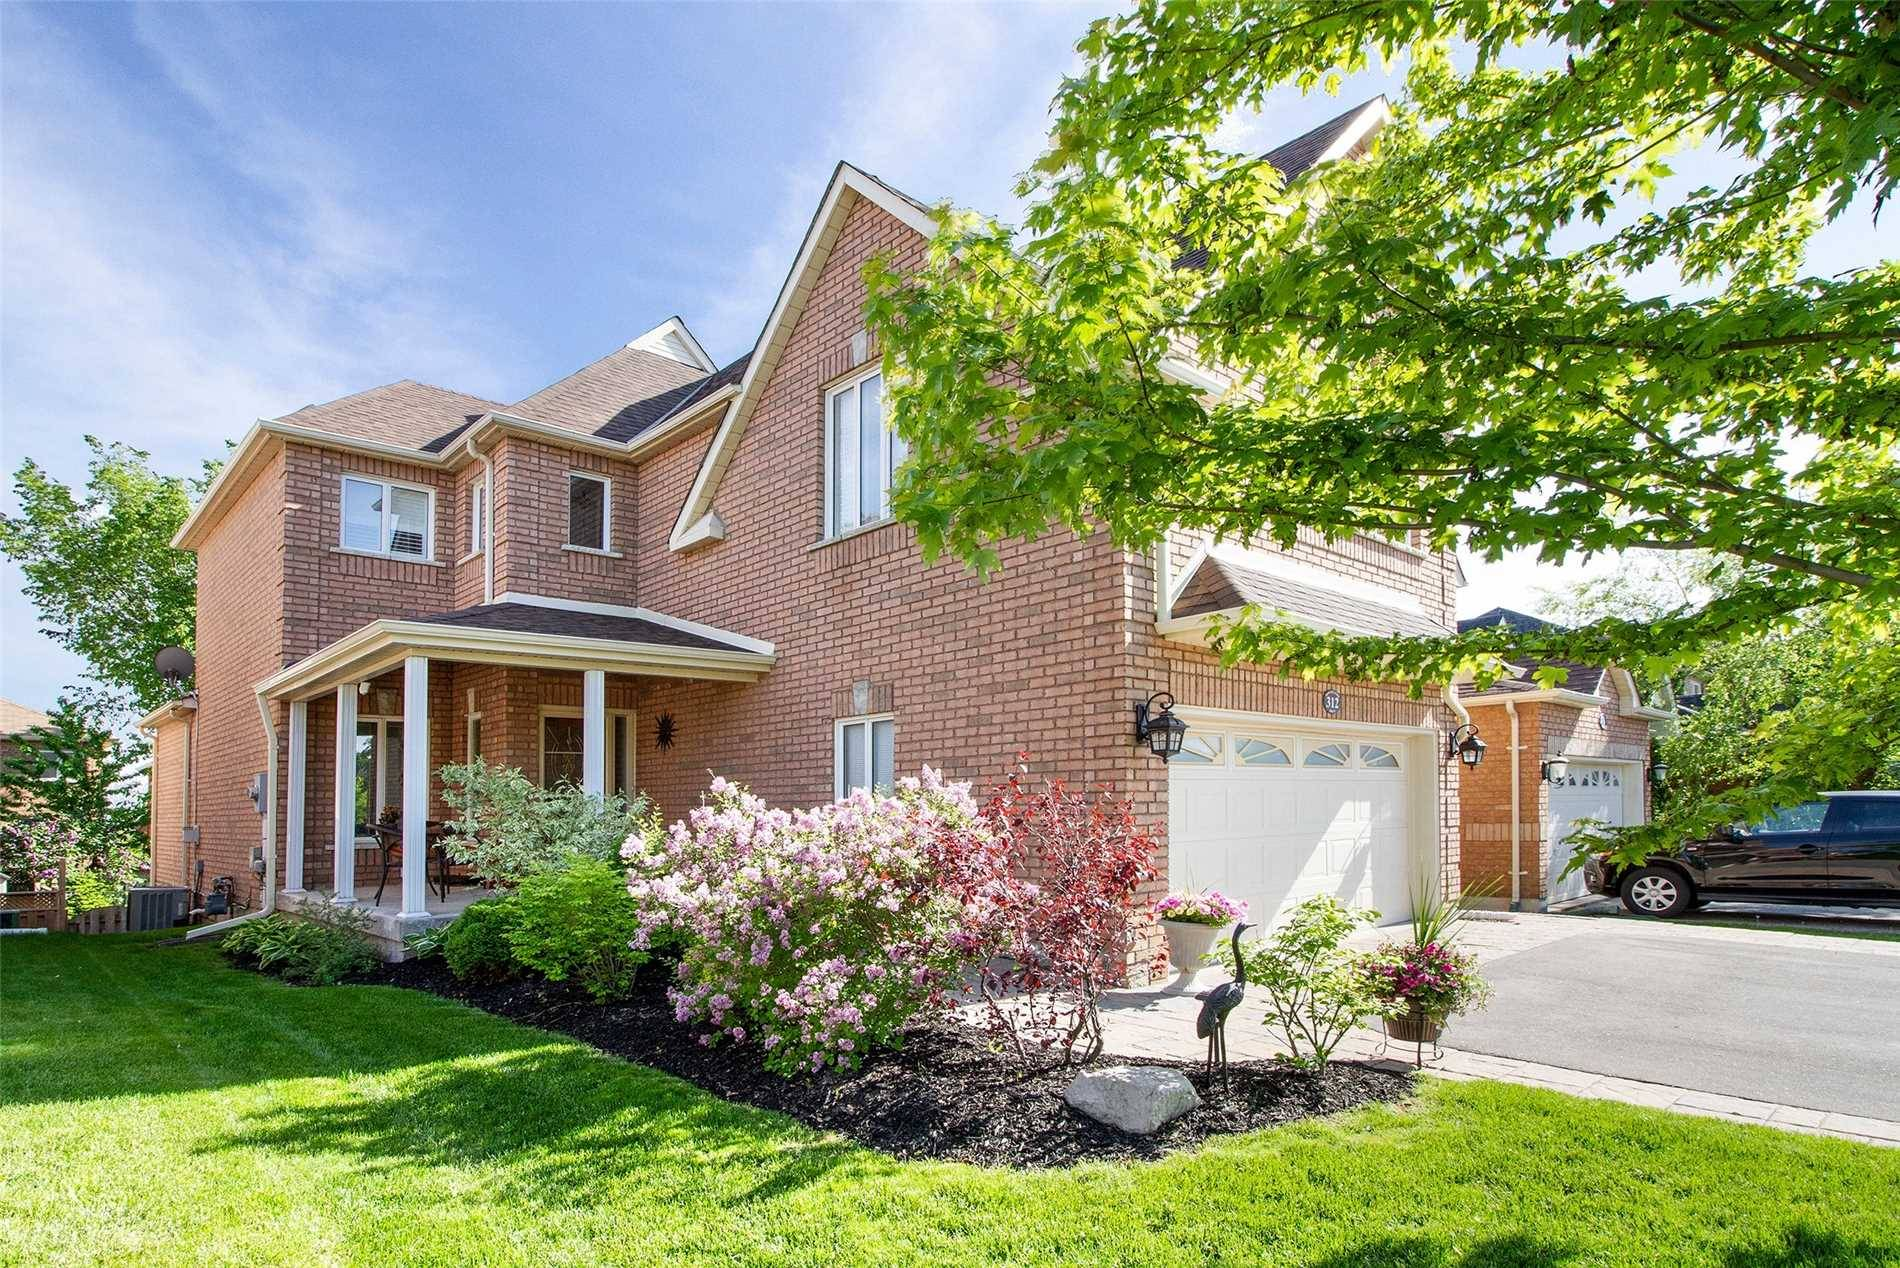 House for sale at 312 Hoover Park Dr Whitchurch-stouffville Ontario - MLS: N4448817